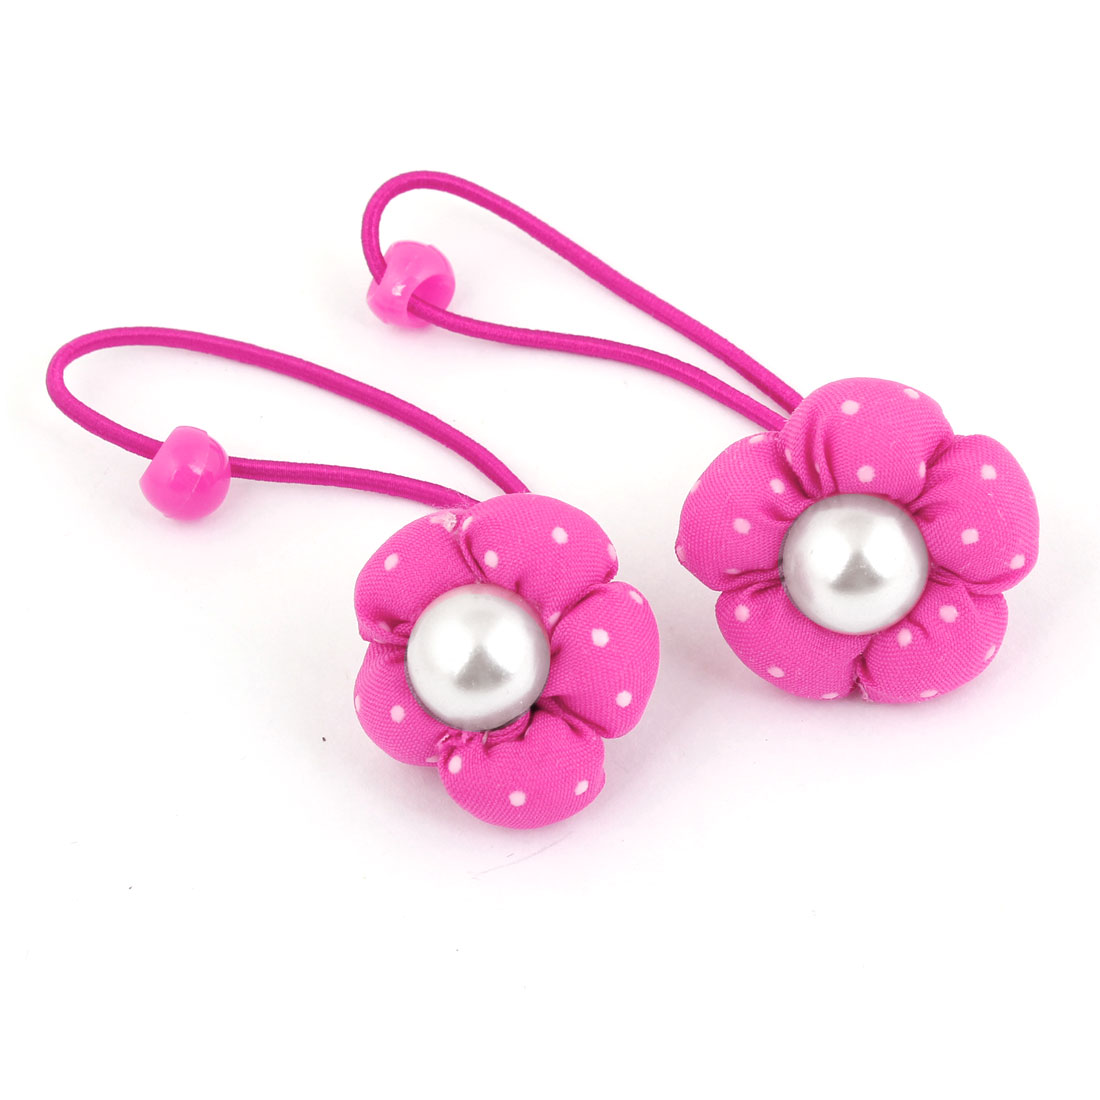 2PCS Fuchsia Floral Imitation Pearl Decor Stretchy Hair Band Ponytail Holder for Lady